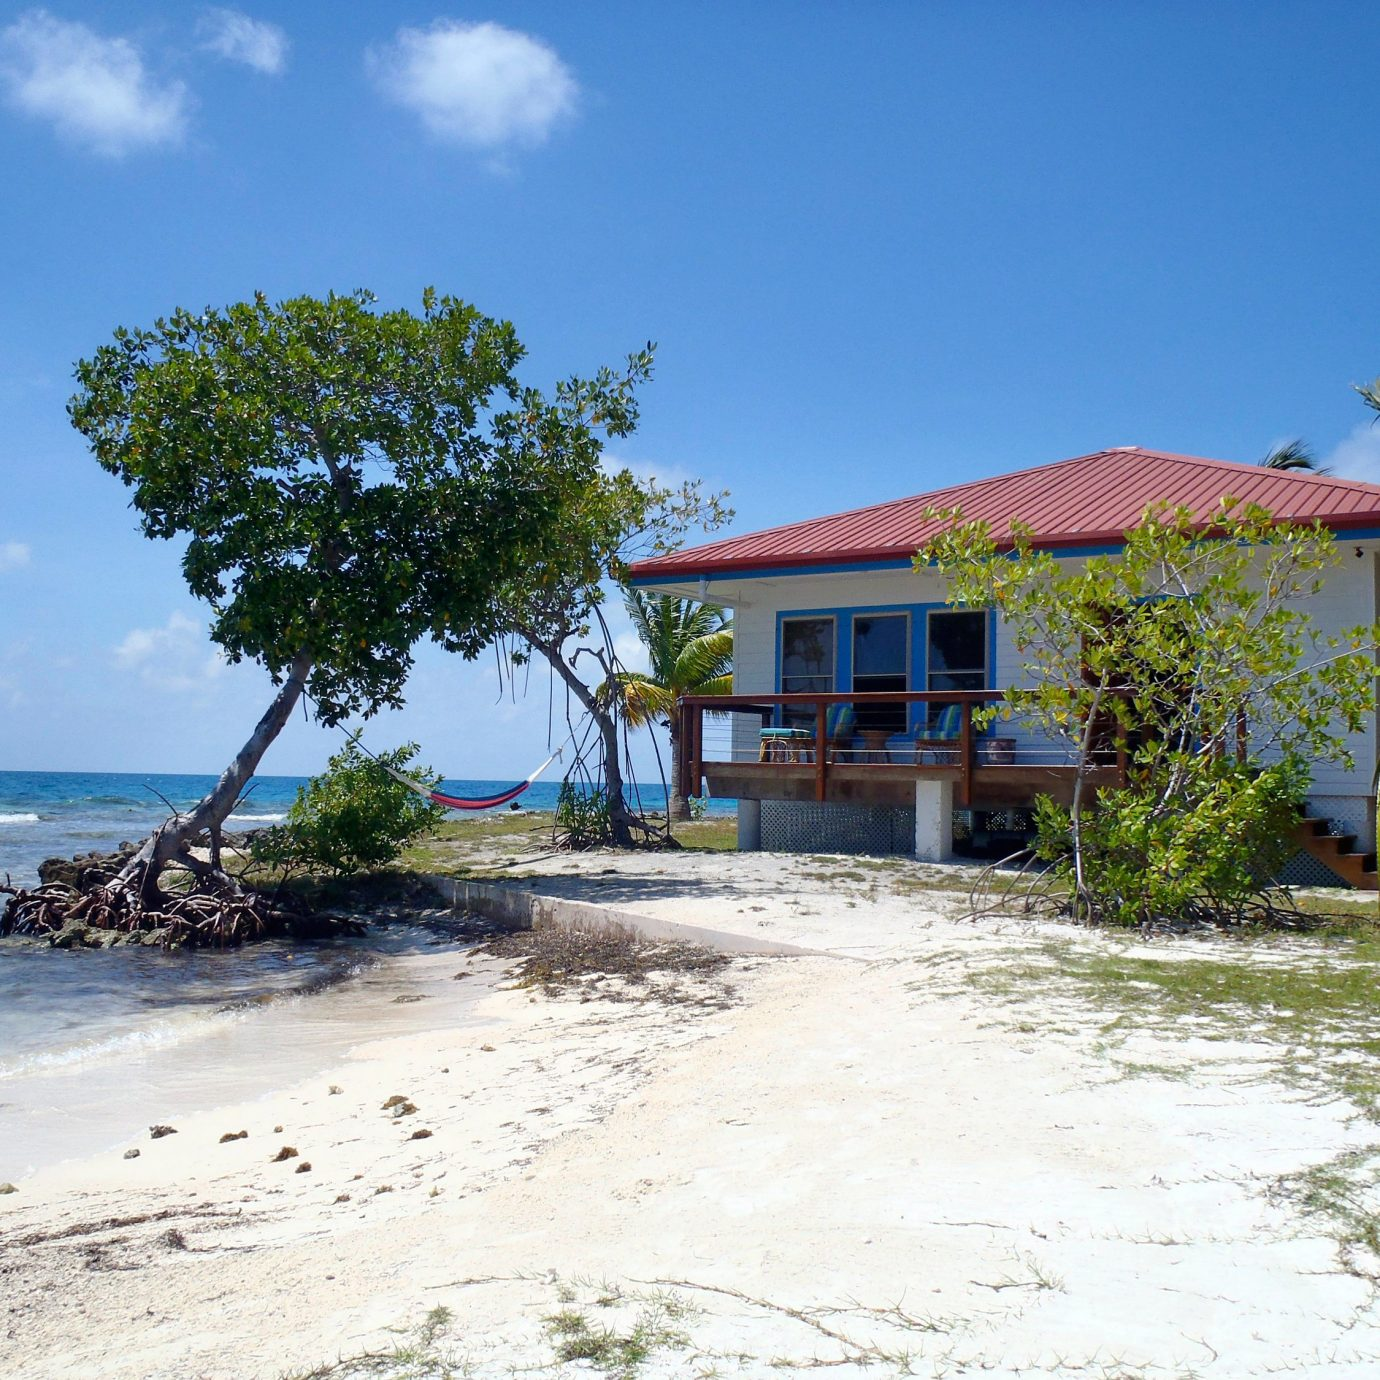 Beach Beachfront Budget Exterior Family Island Tropical sky property Resort Nature caribbean Sea shore sandy